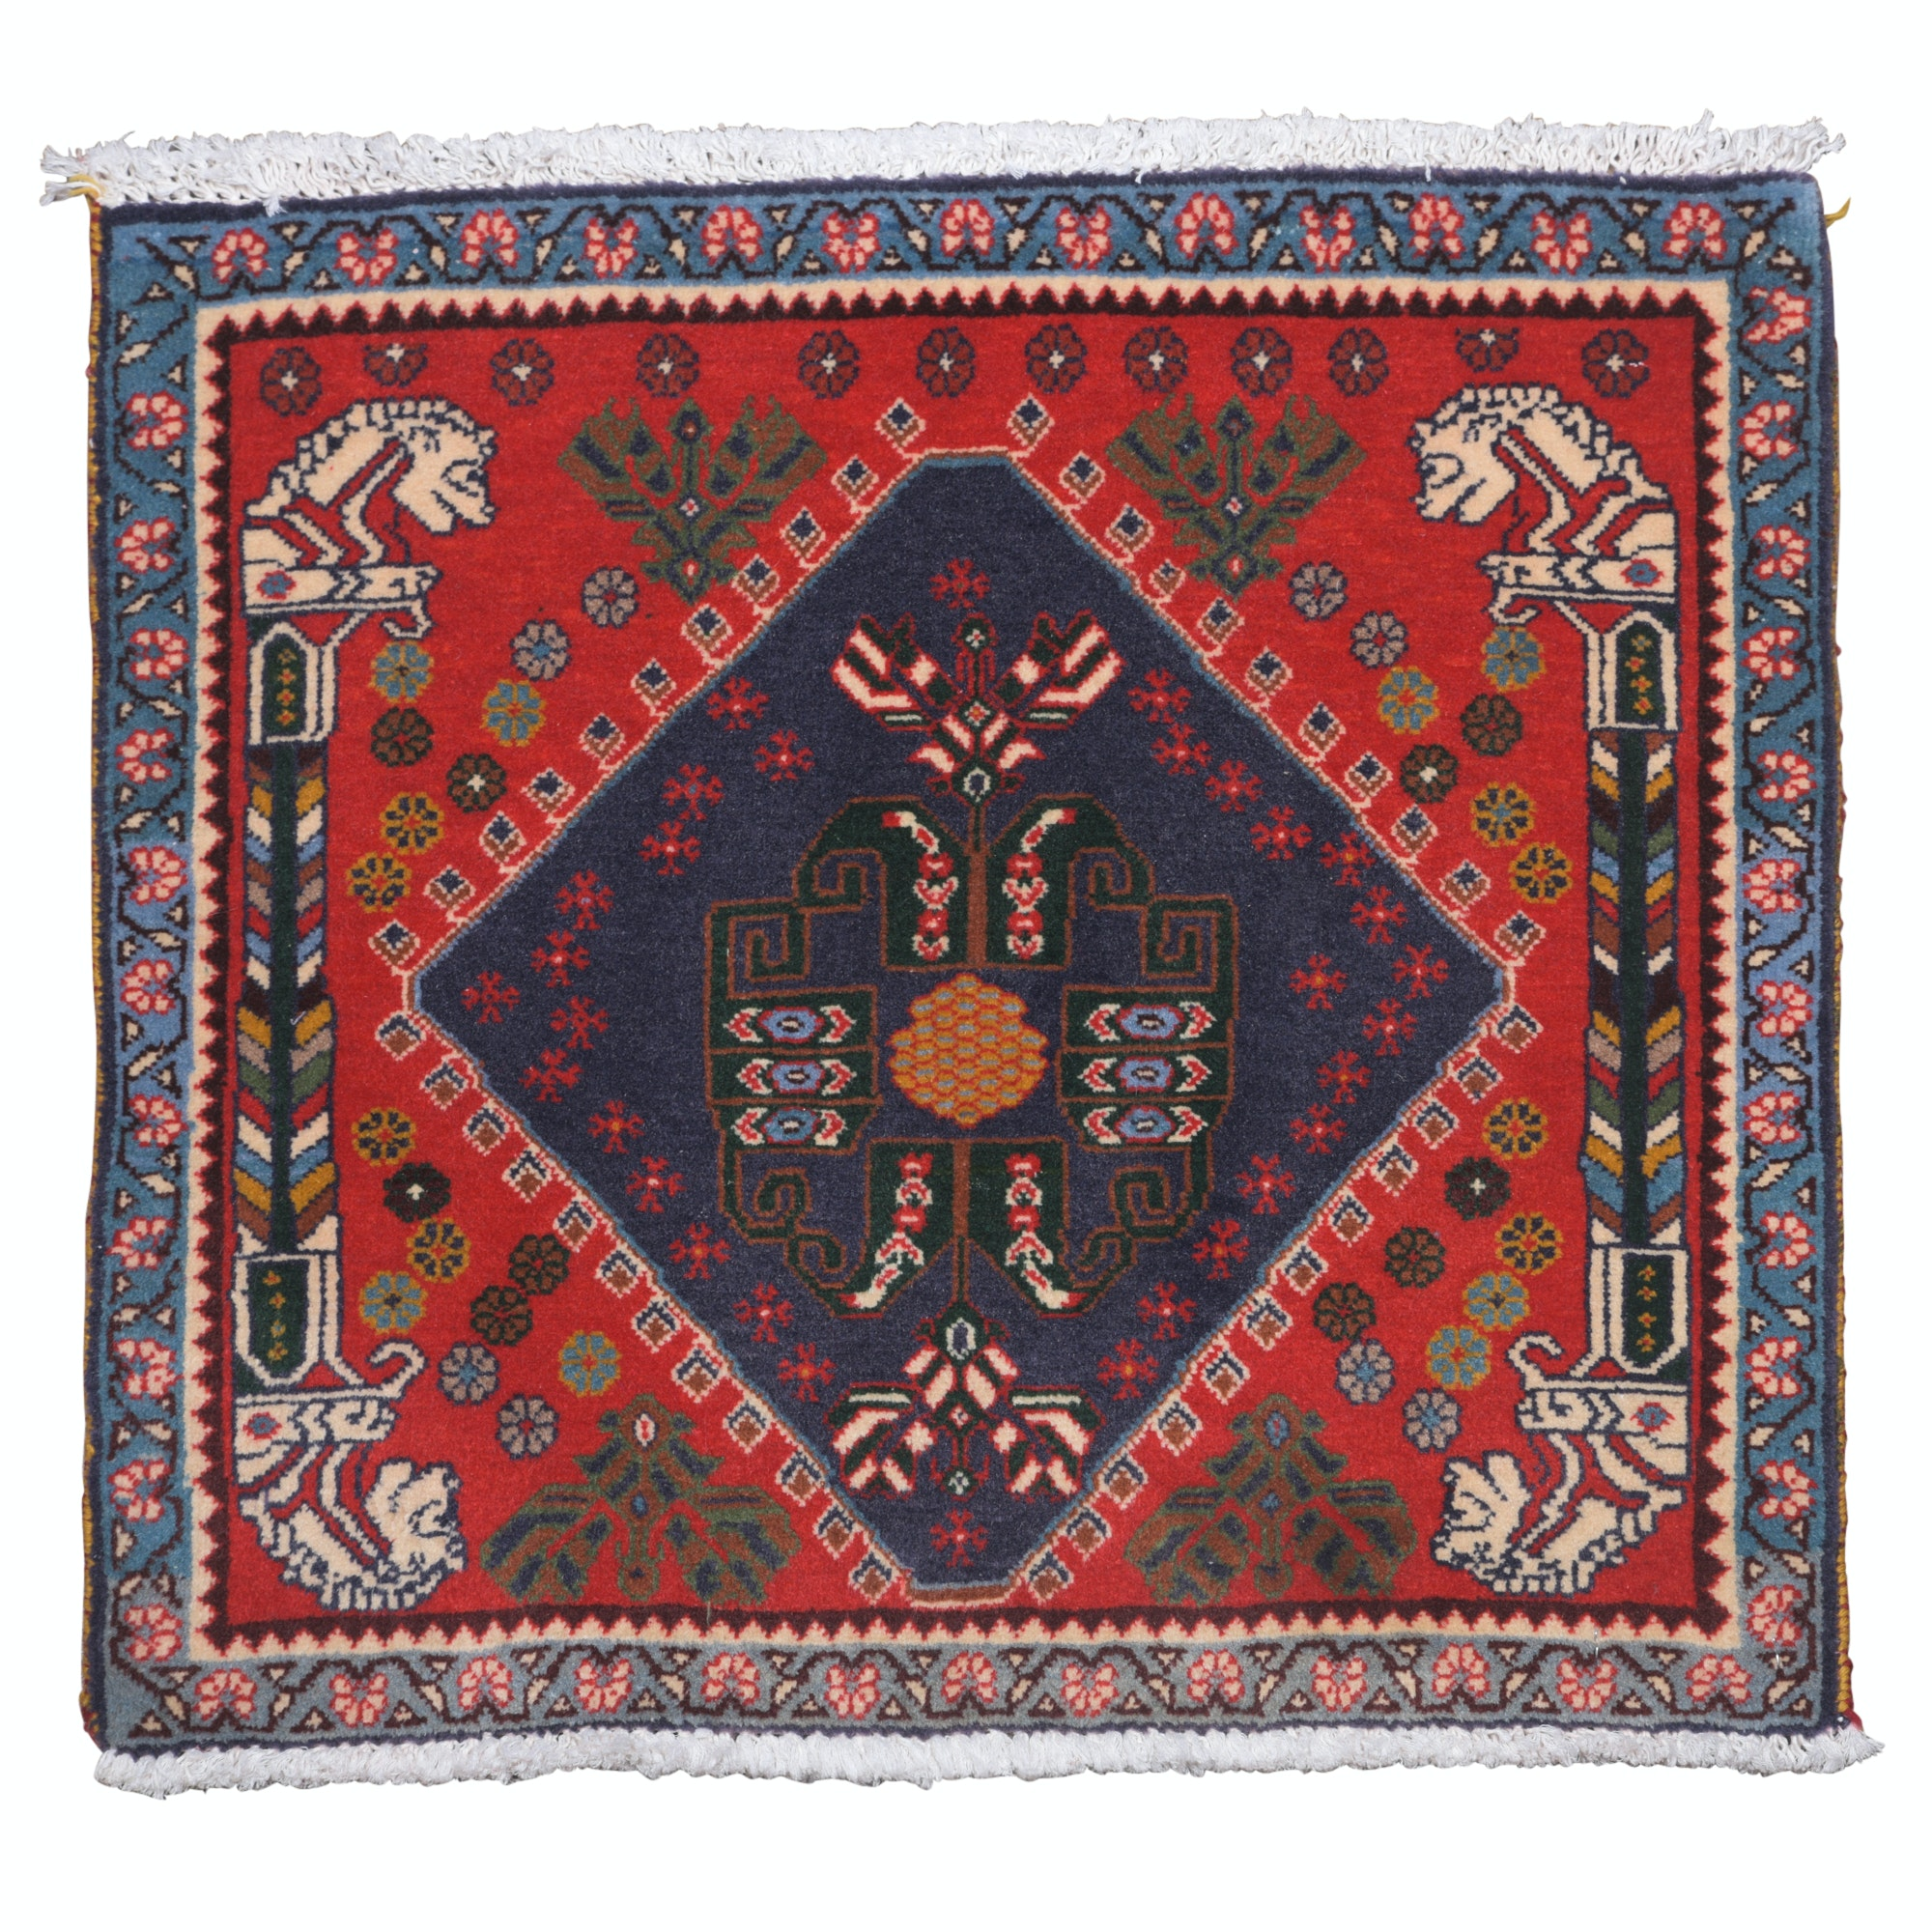 Hand-Knotted Persian Qashqai Wool Floor Mat